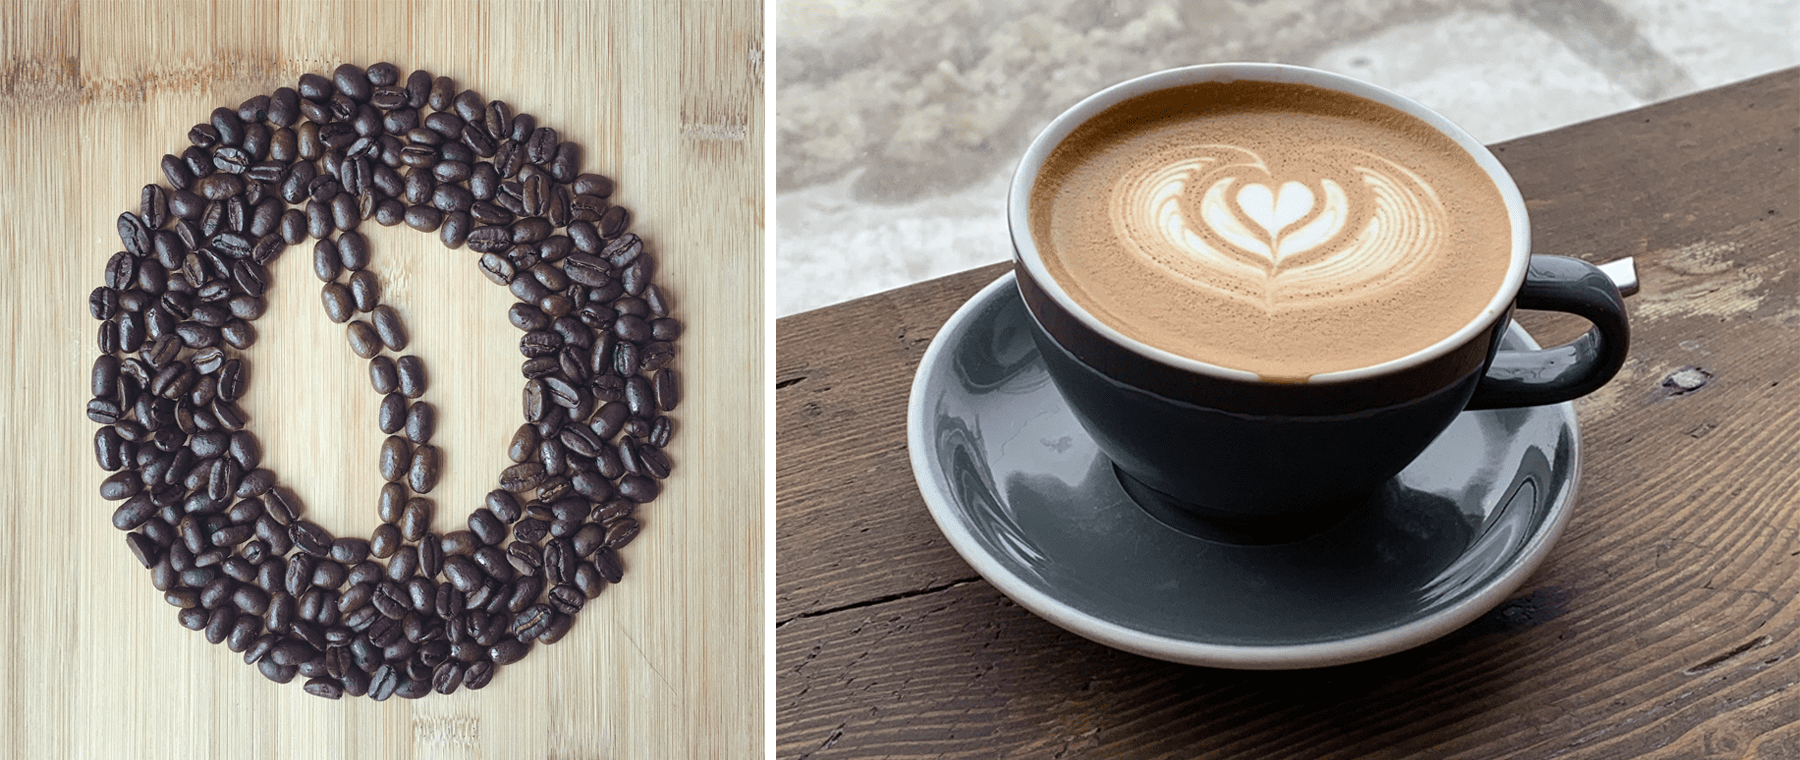 Java time! Coffee festival takes over Horticulture Building in March